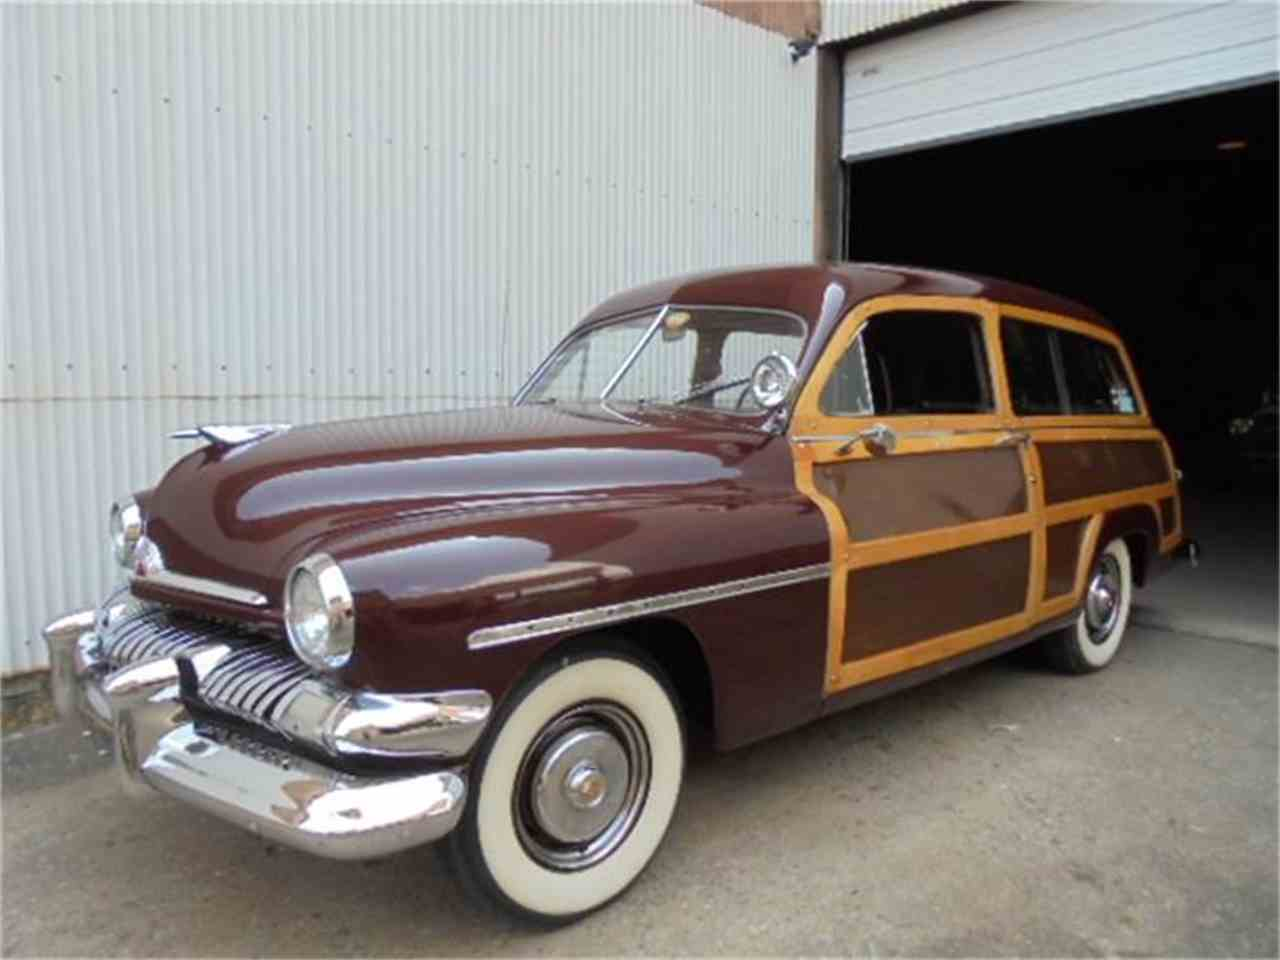 Nj Vehicle Inspection >> 1951 Mercury Woody Wagon for Sale | ClassicCars.com | CC ...